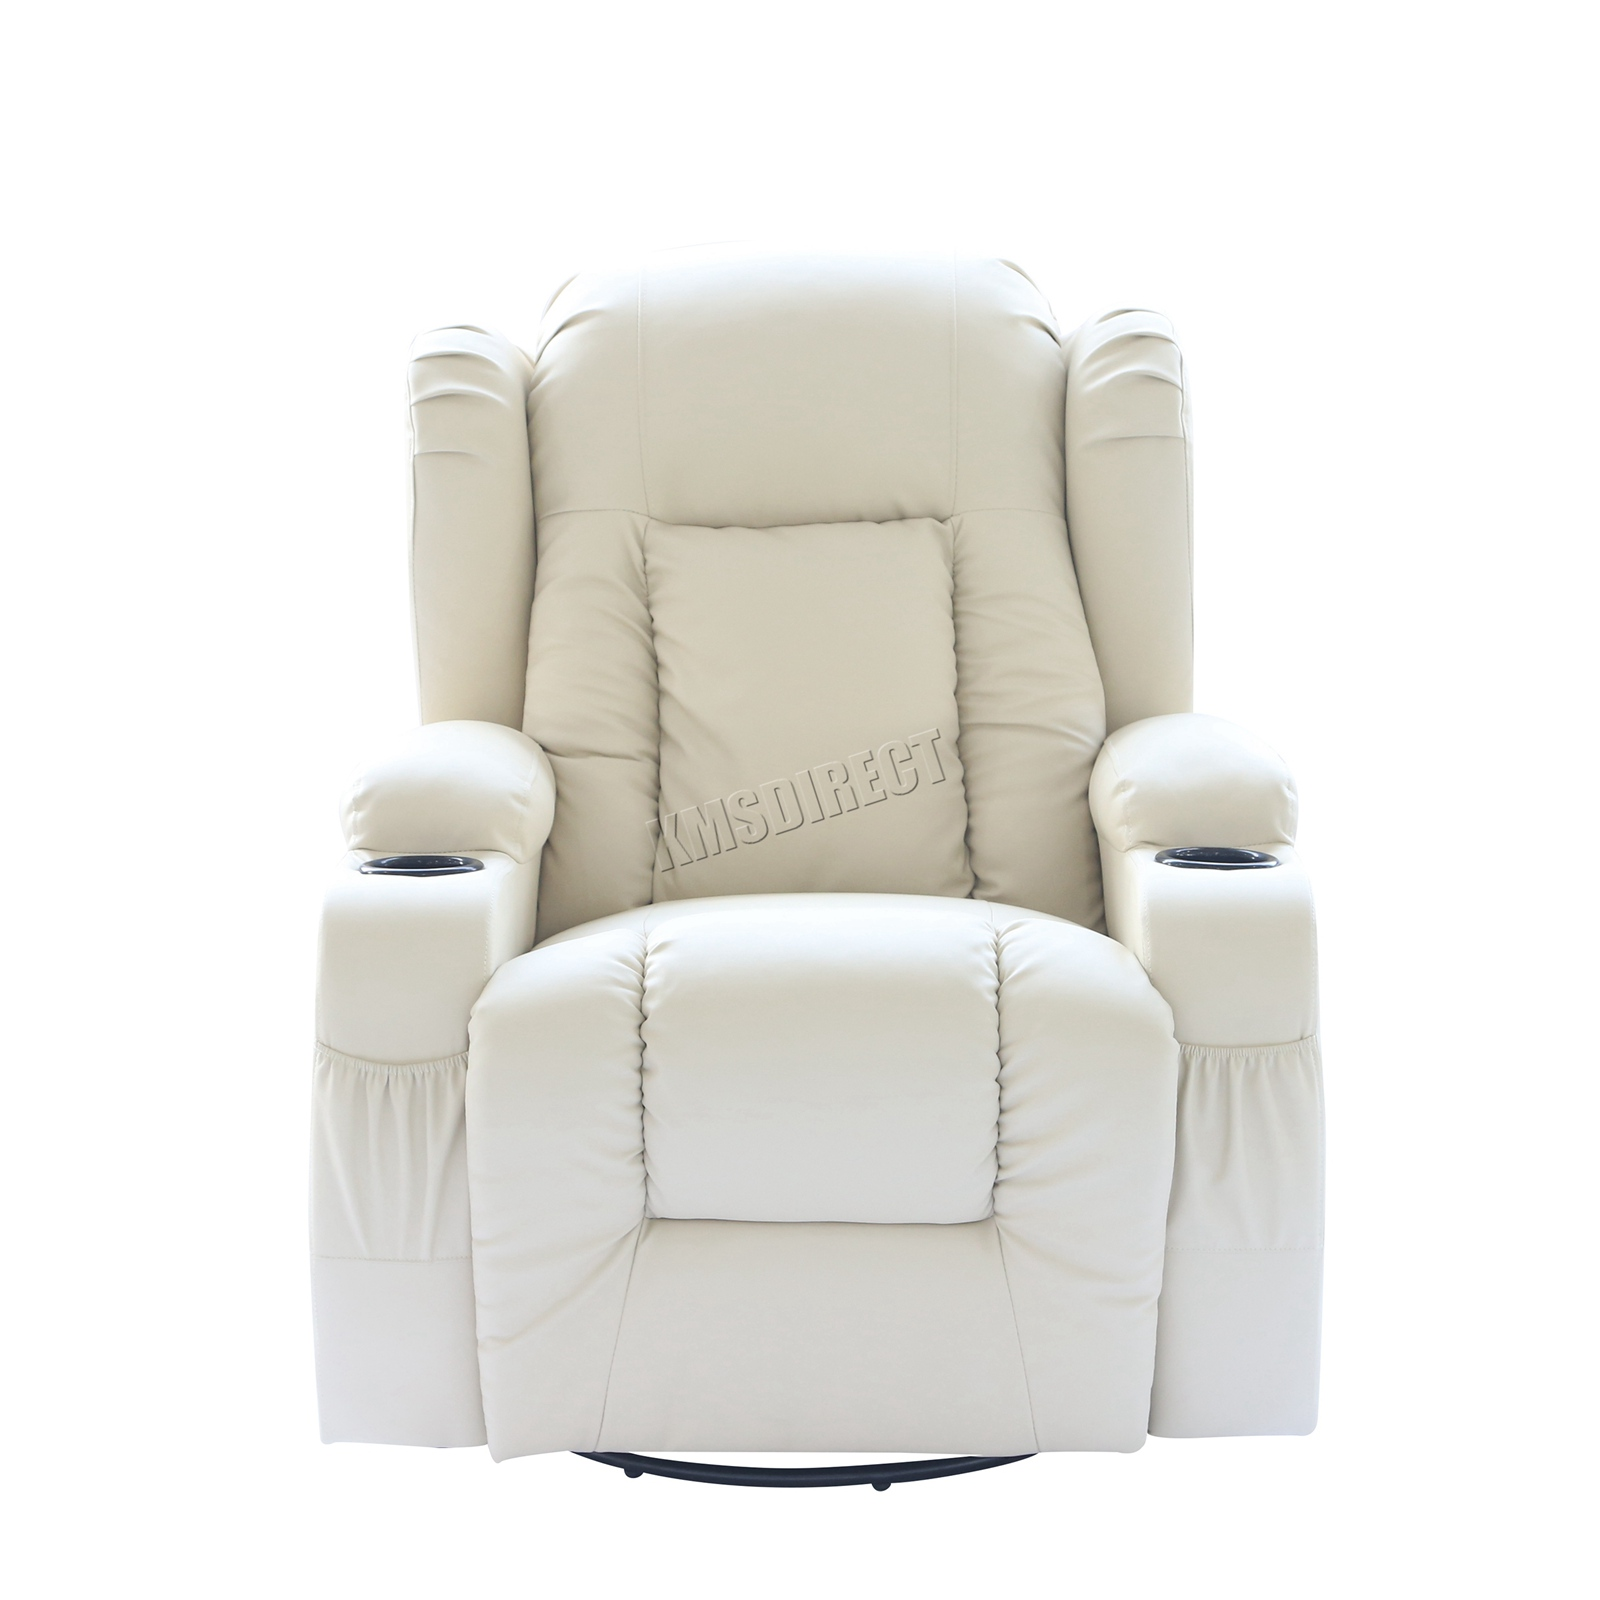 WESTWOOD-Leather-Recliner-Armchair-Swivel-Heated-chair-Massage-Gaming-Chair thumbnail 37